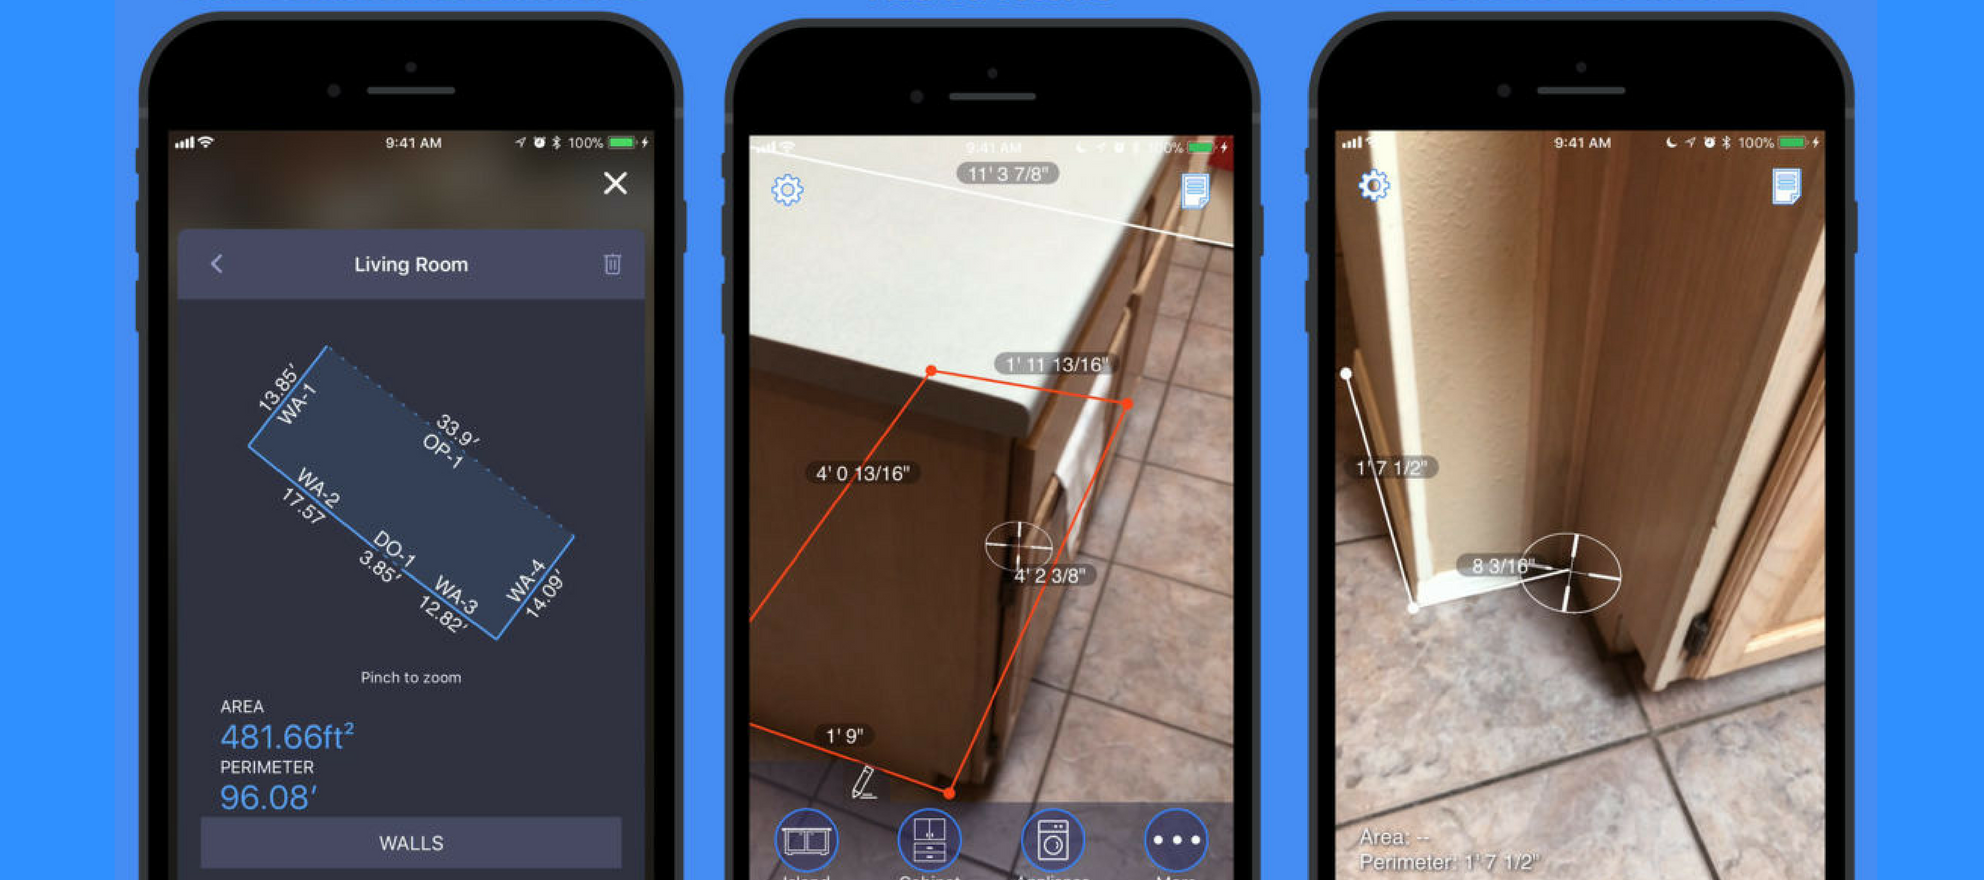 Plnar Uses Augmented Reality To Capture Floor Plans Inman